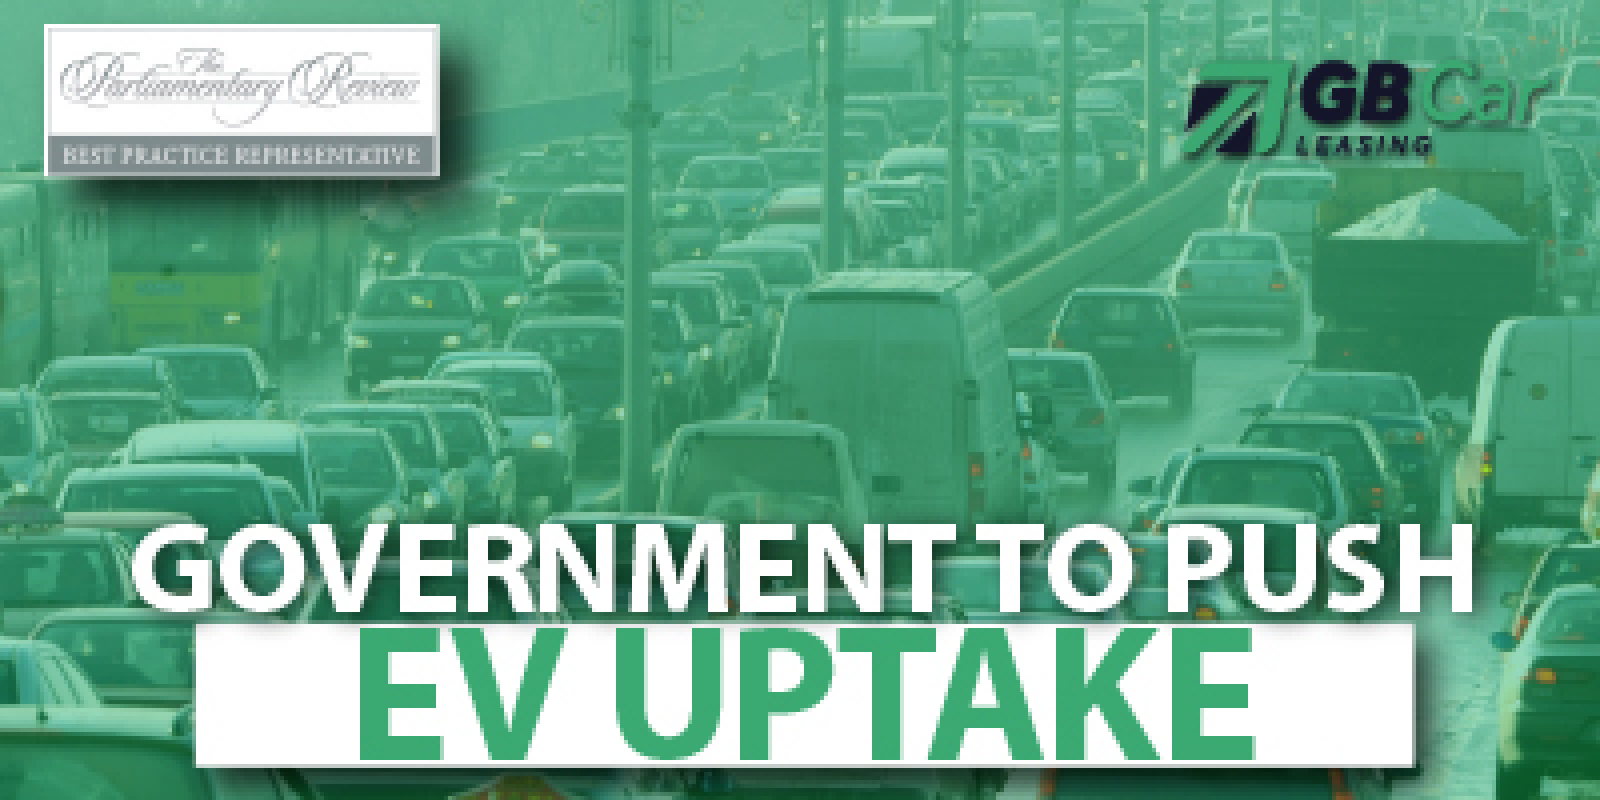 Government announces plan to push EV uptake